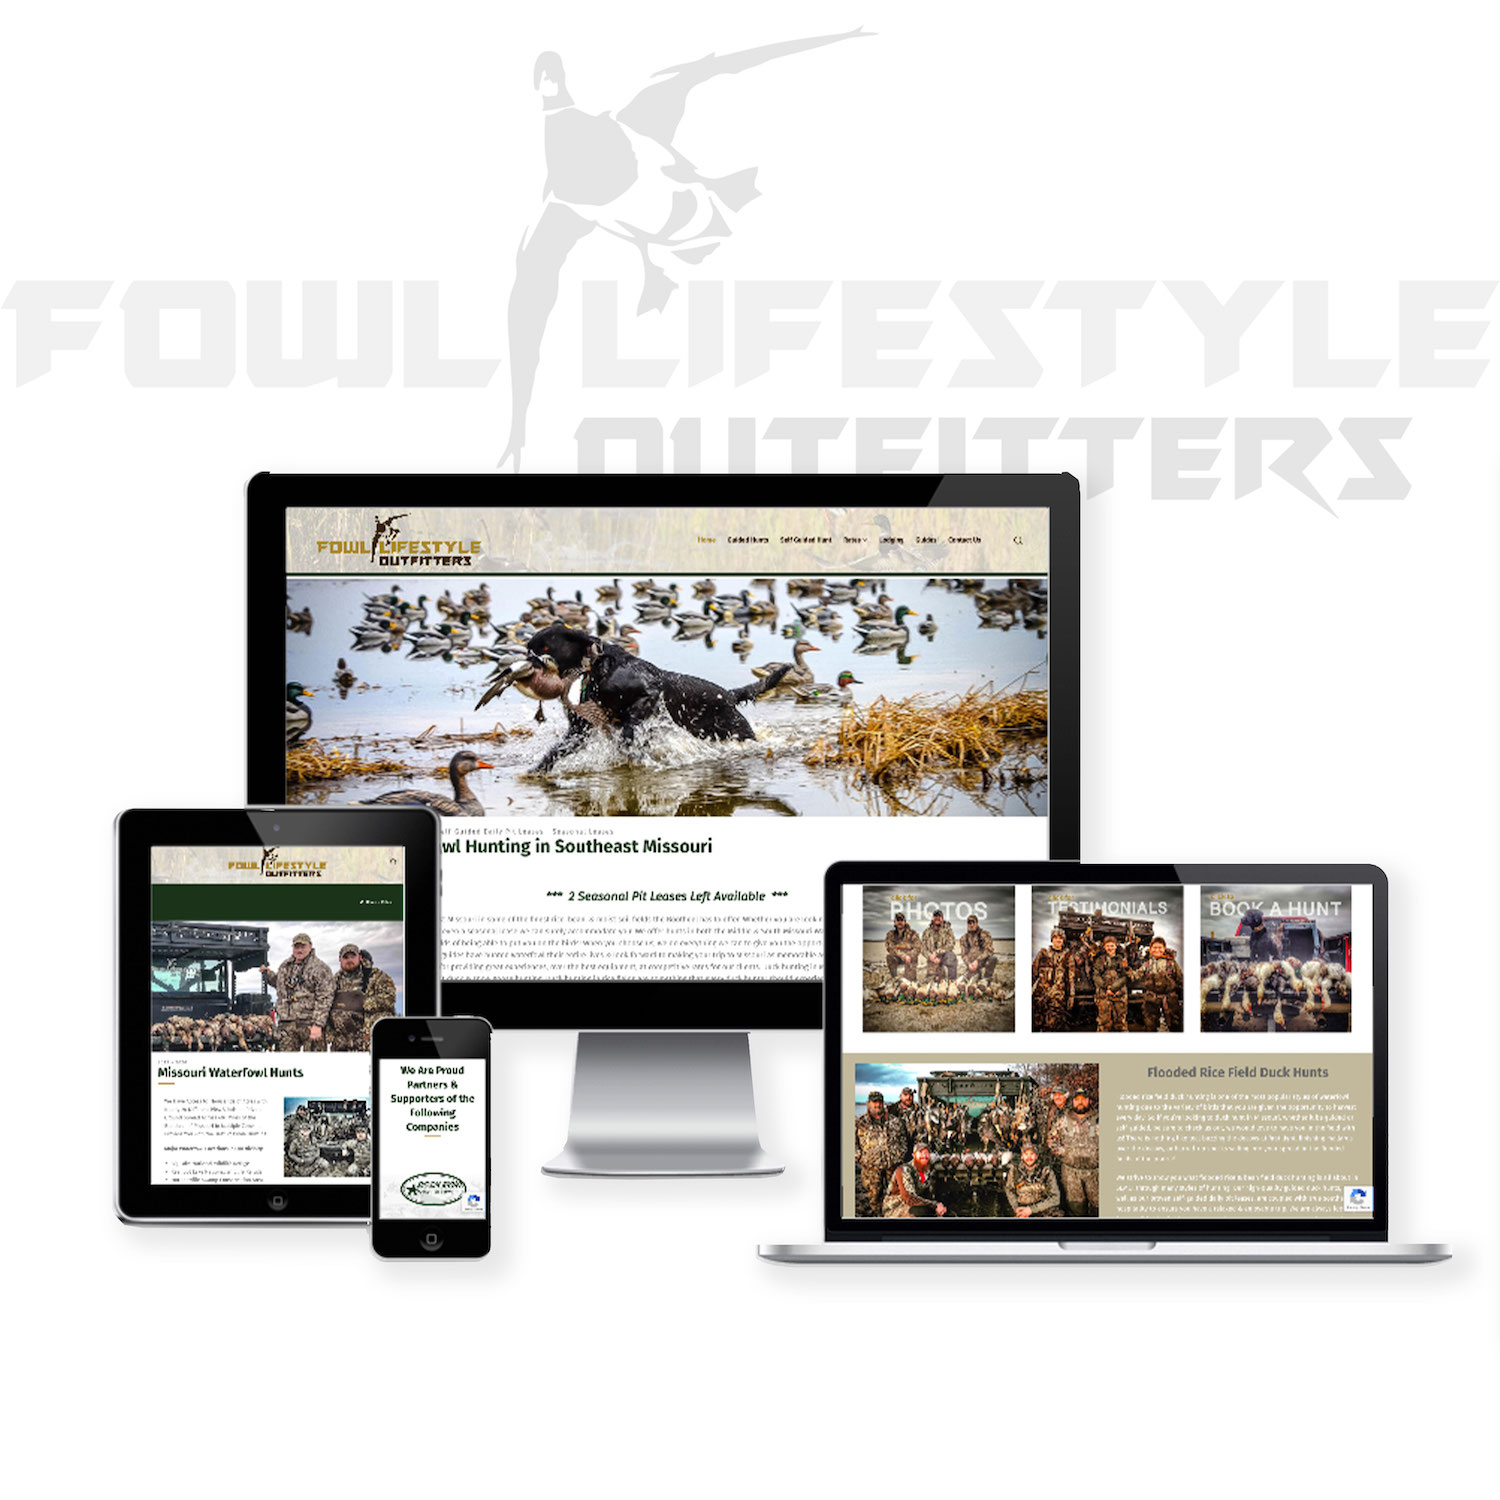 Waterfowl guide website design